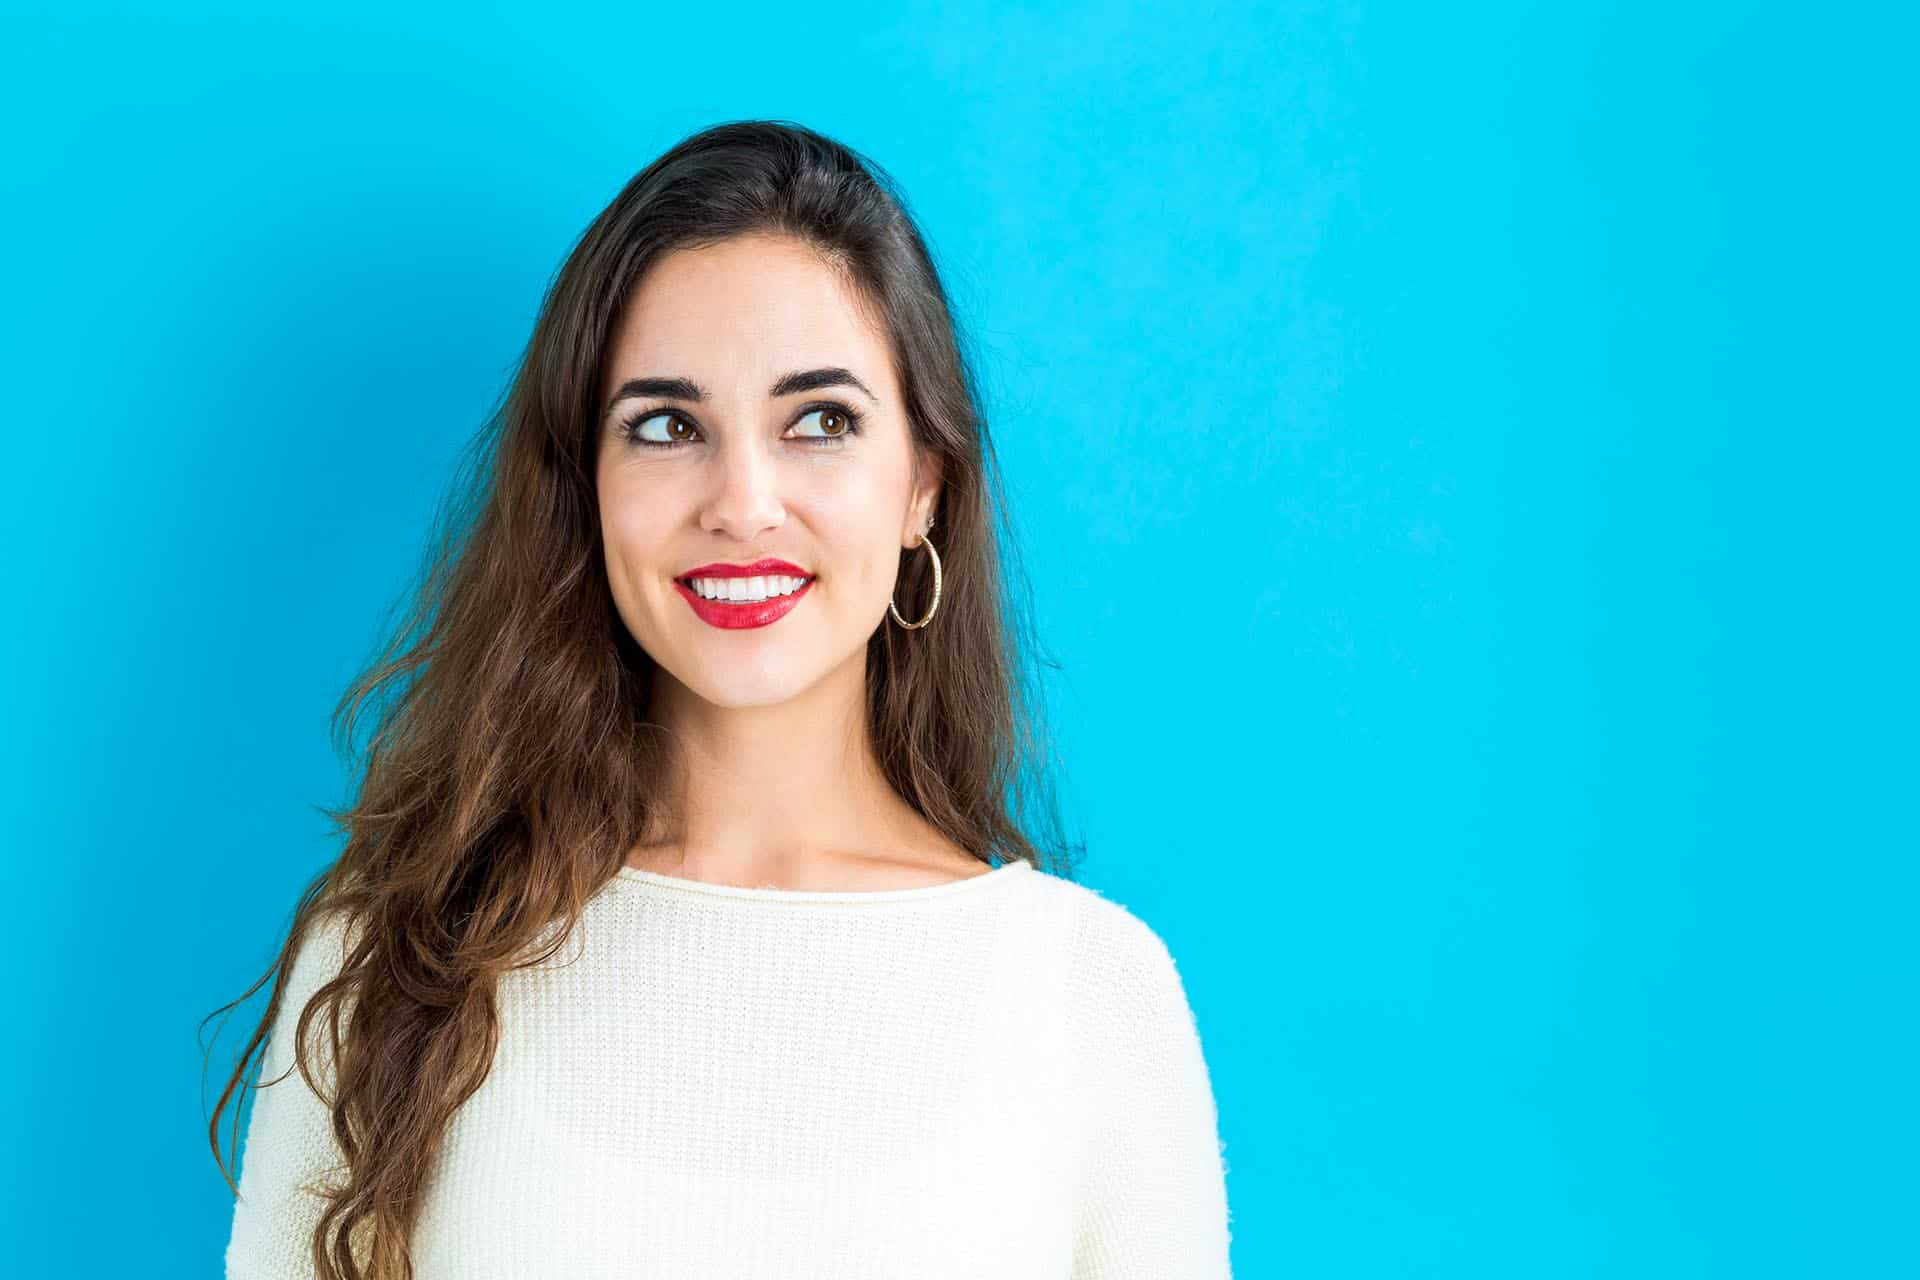 Happy young woman on a blue background.